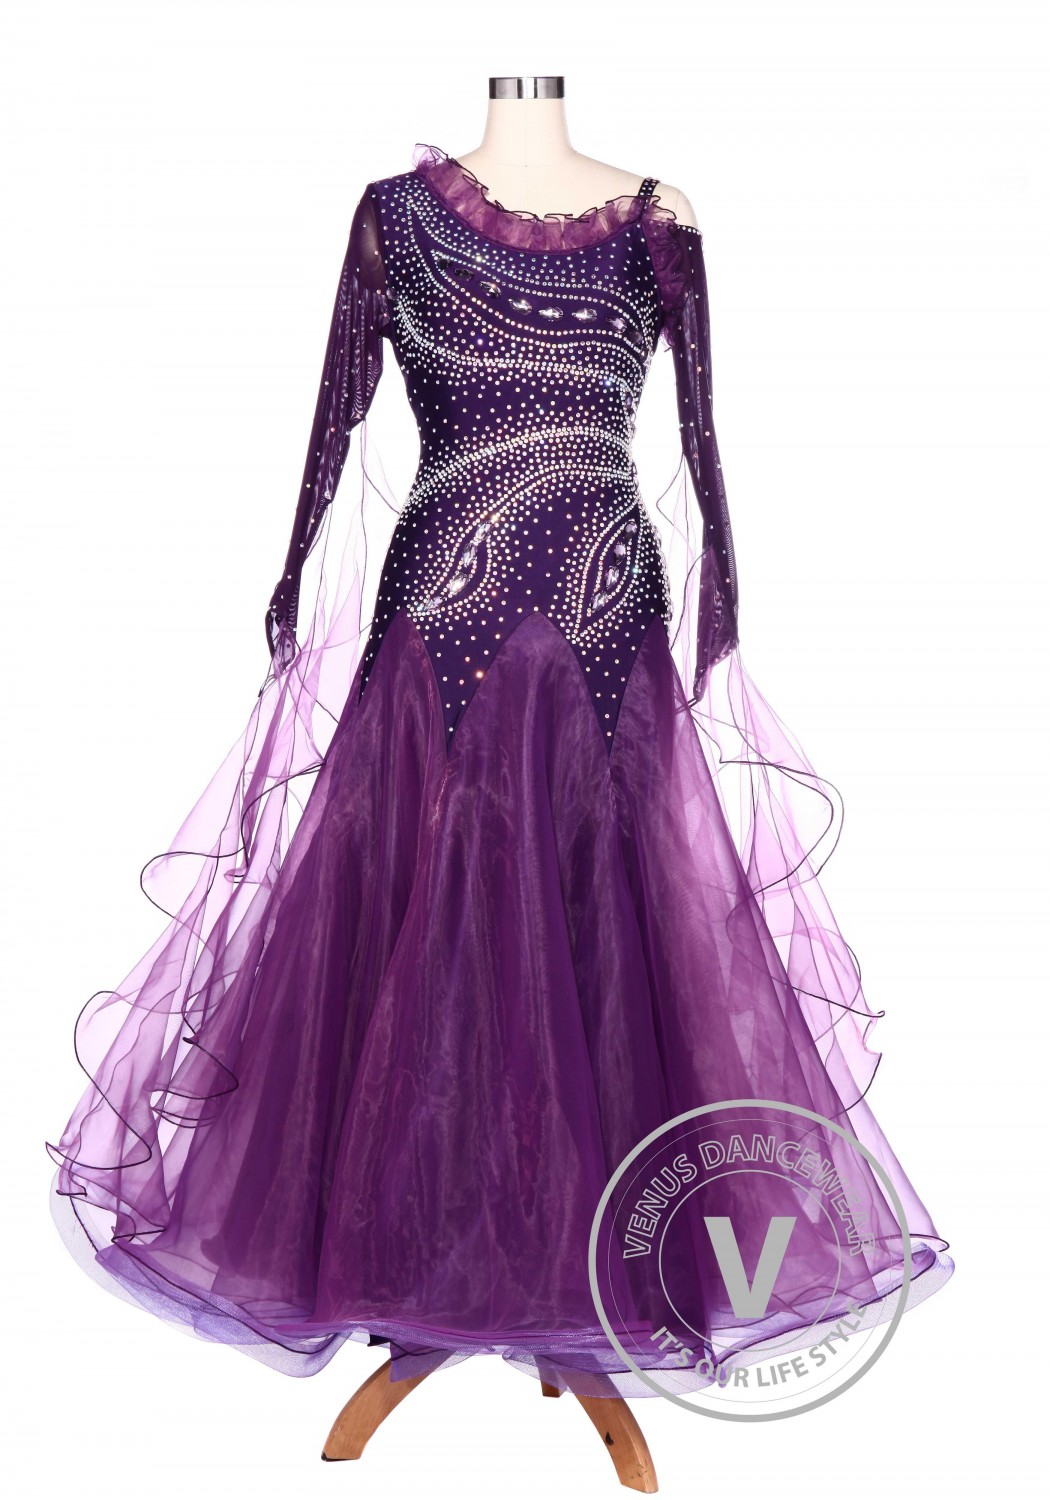 Plum Tail Waltz Smooth Standard Tango Ballroom Women Competition Dress